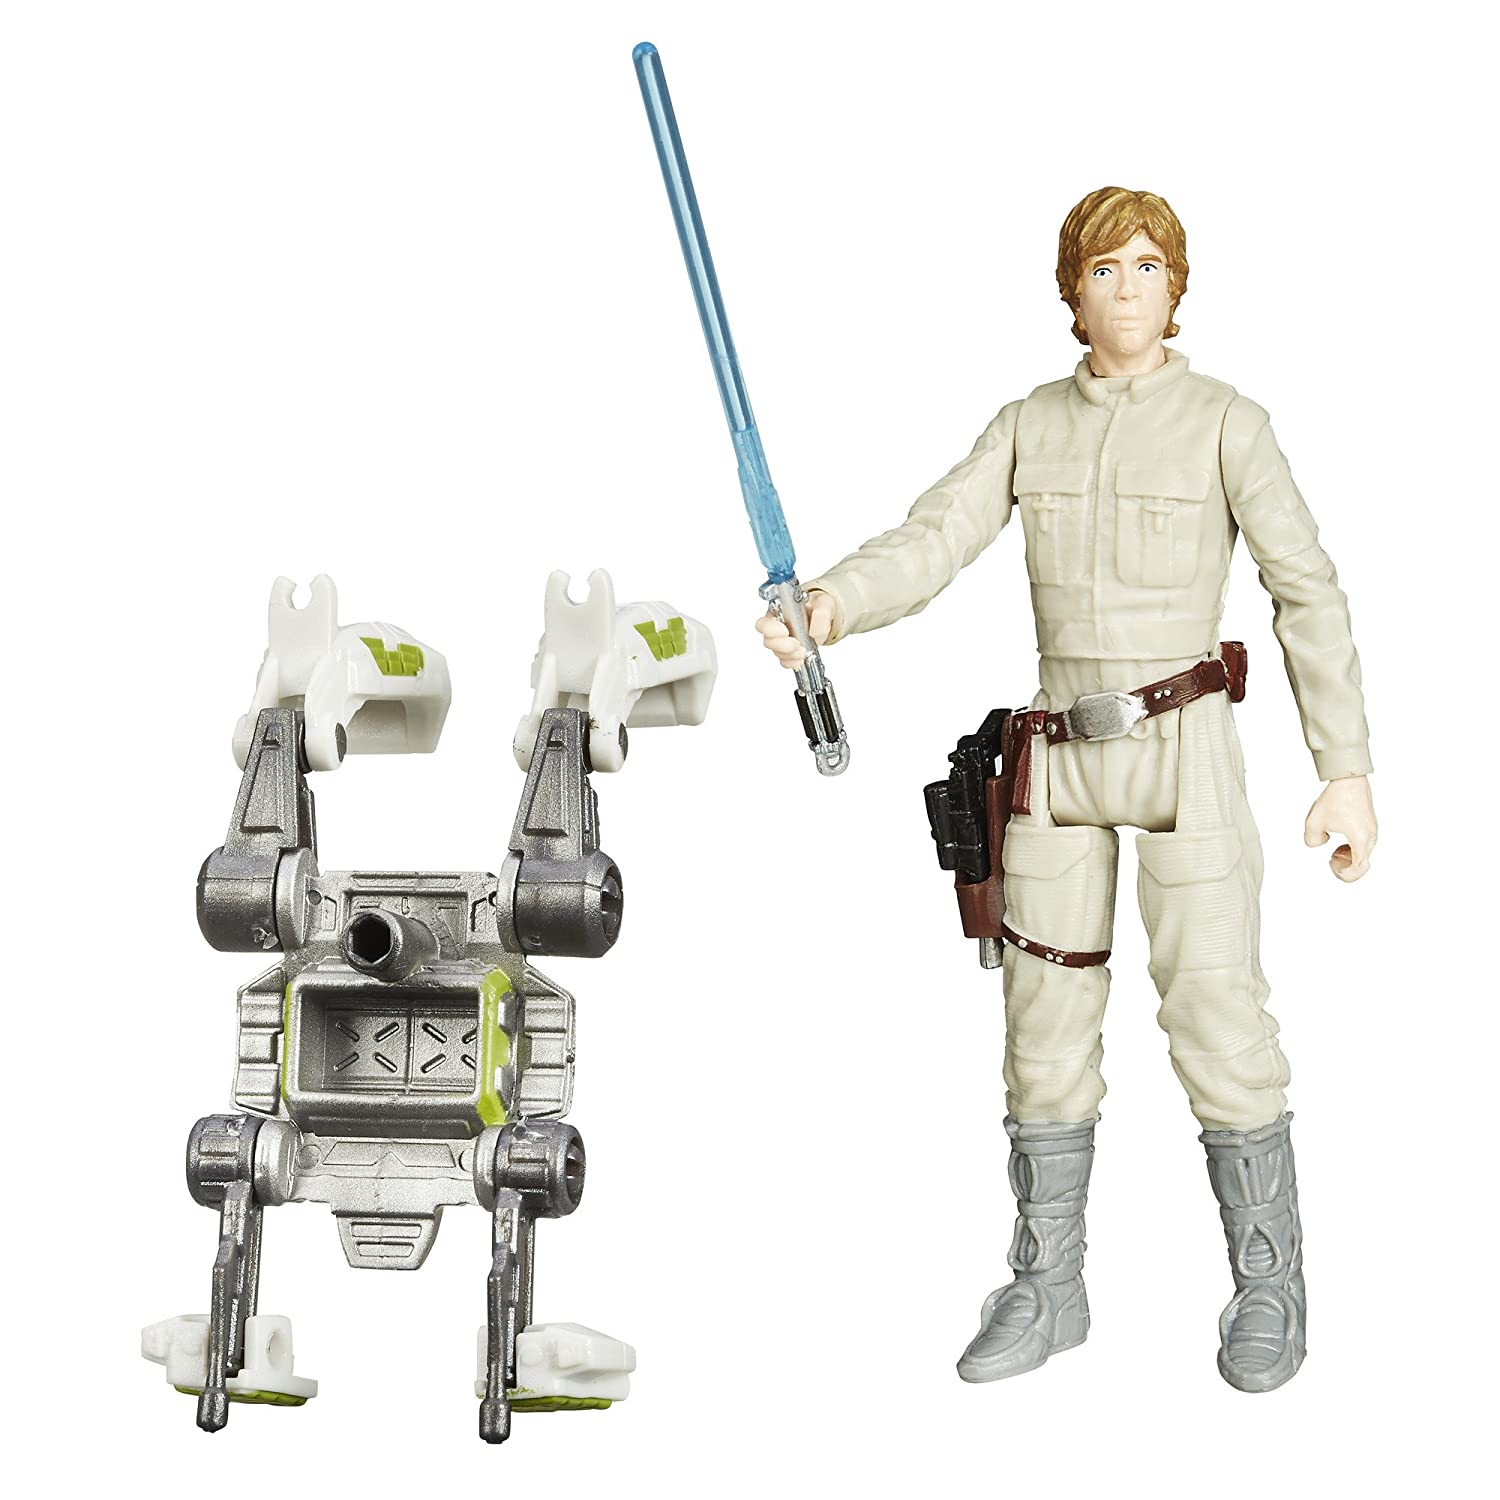 Star Wars The Empire Strikes Back 3.75-Inch Figure Forest Mission Luke Skywalker Bespin Hasbro B3448AS0